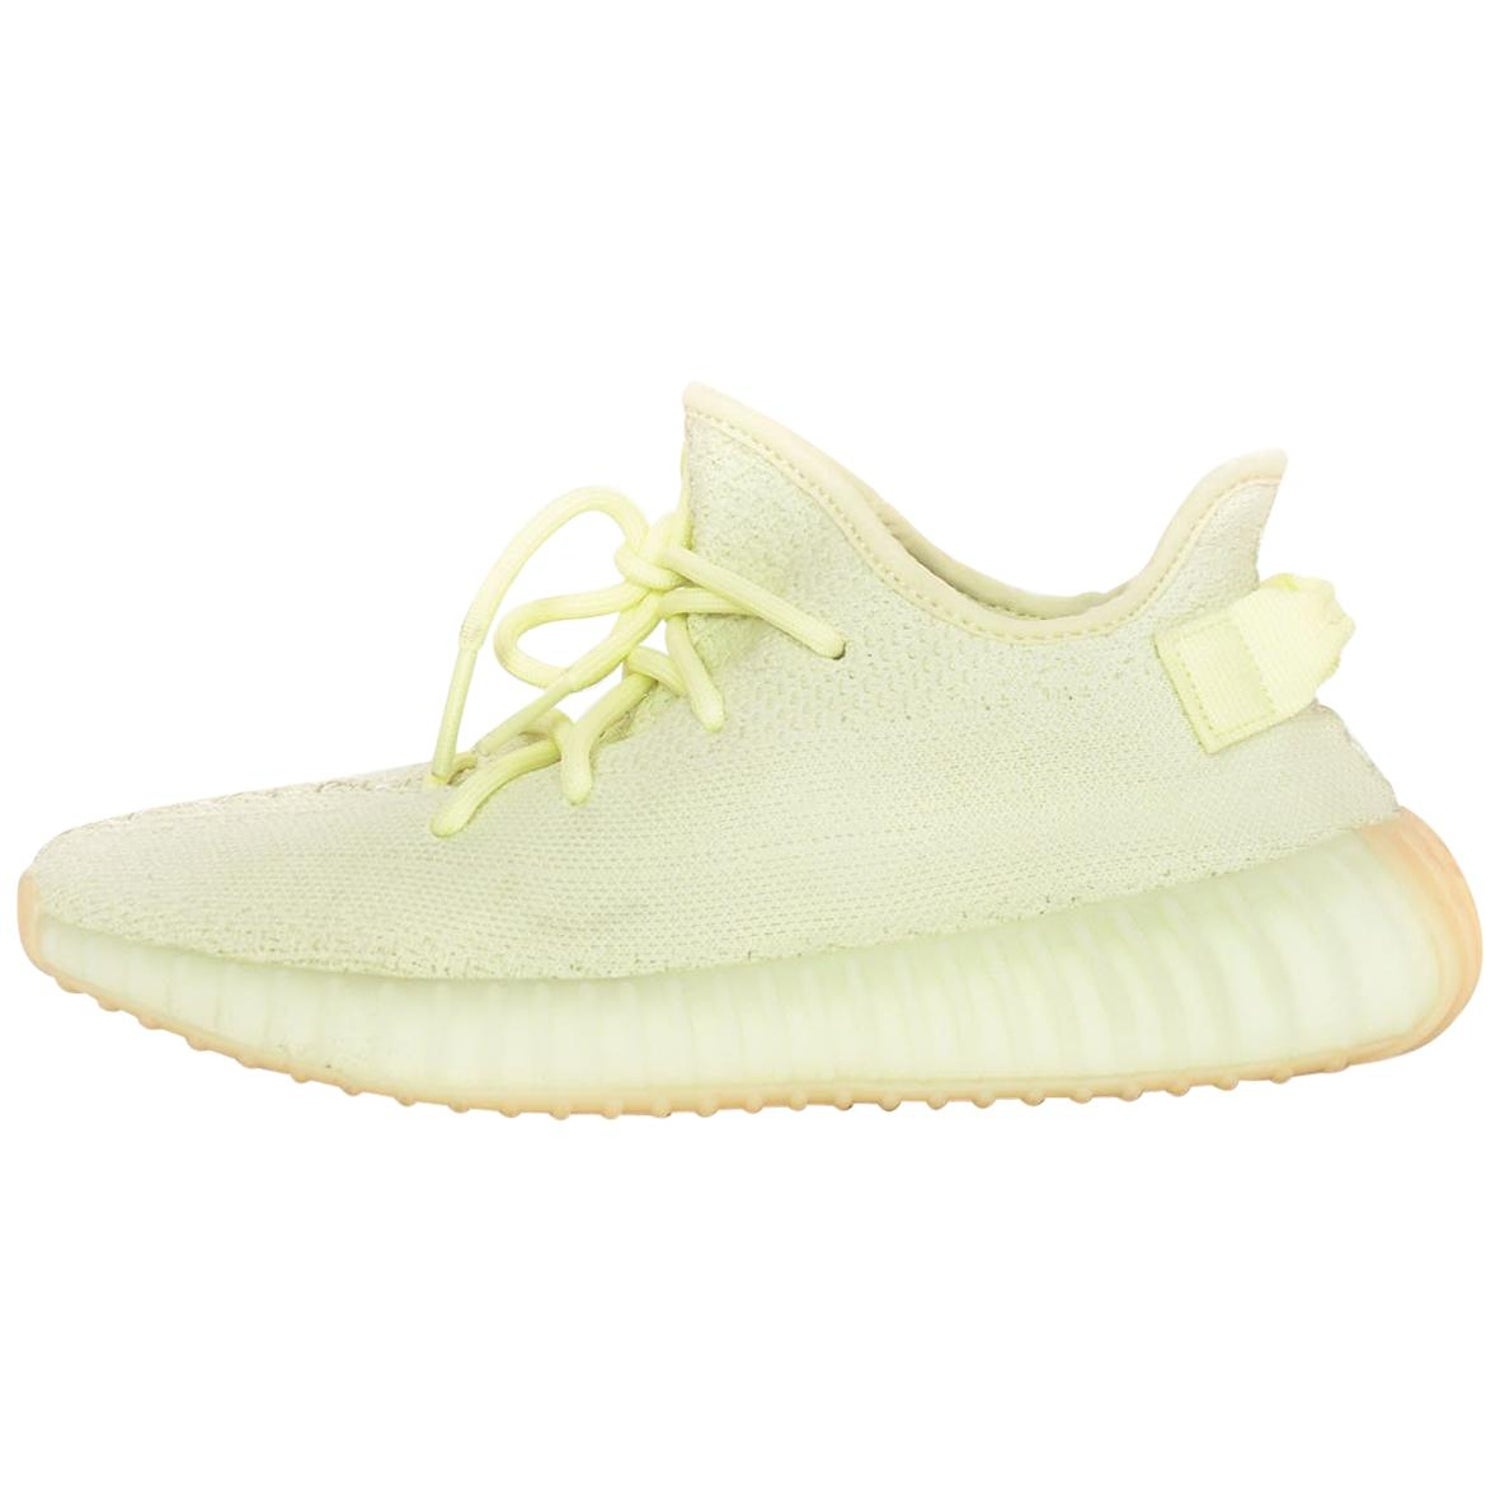 0f06d234d436c Adidas x Kanye West 2018 Yeezy Boost 350 V2  Butter  Men s sz 7 FR 40 For  Sale at 1stdibs